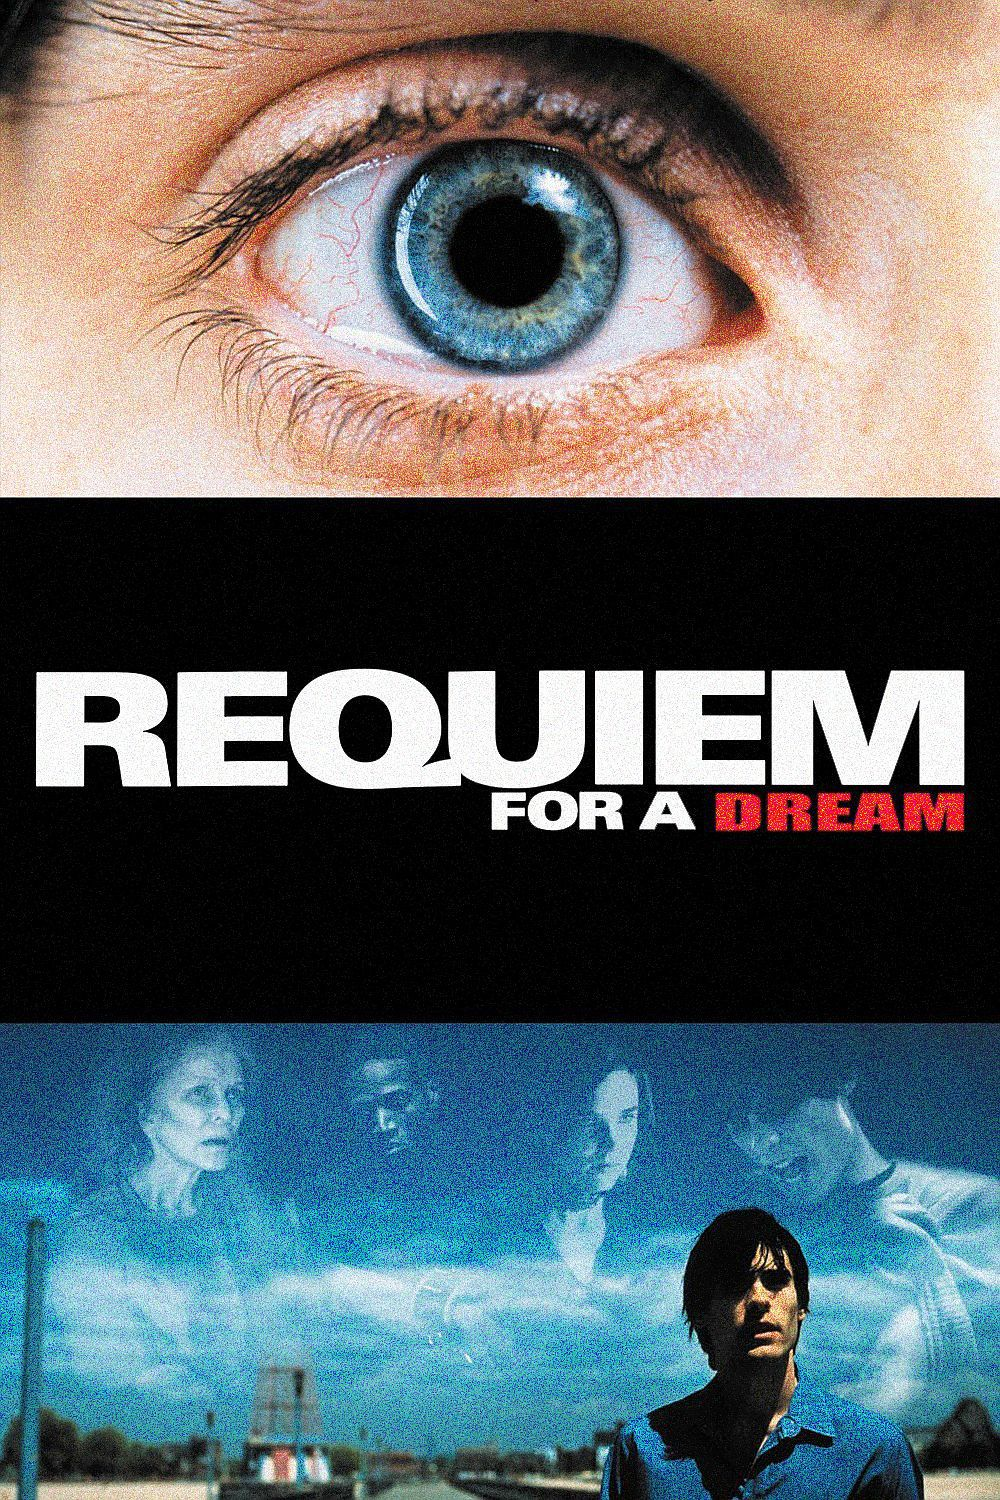 REQUIEM FOR A DREAM - Arren Aronofsky (2000)